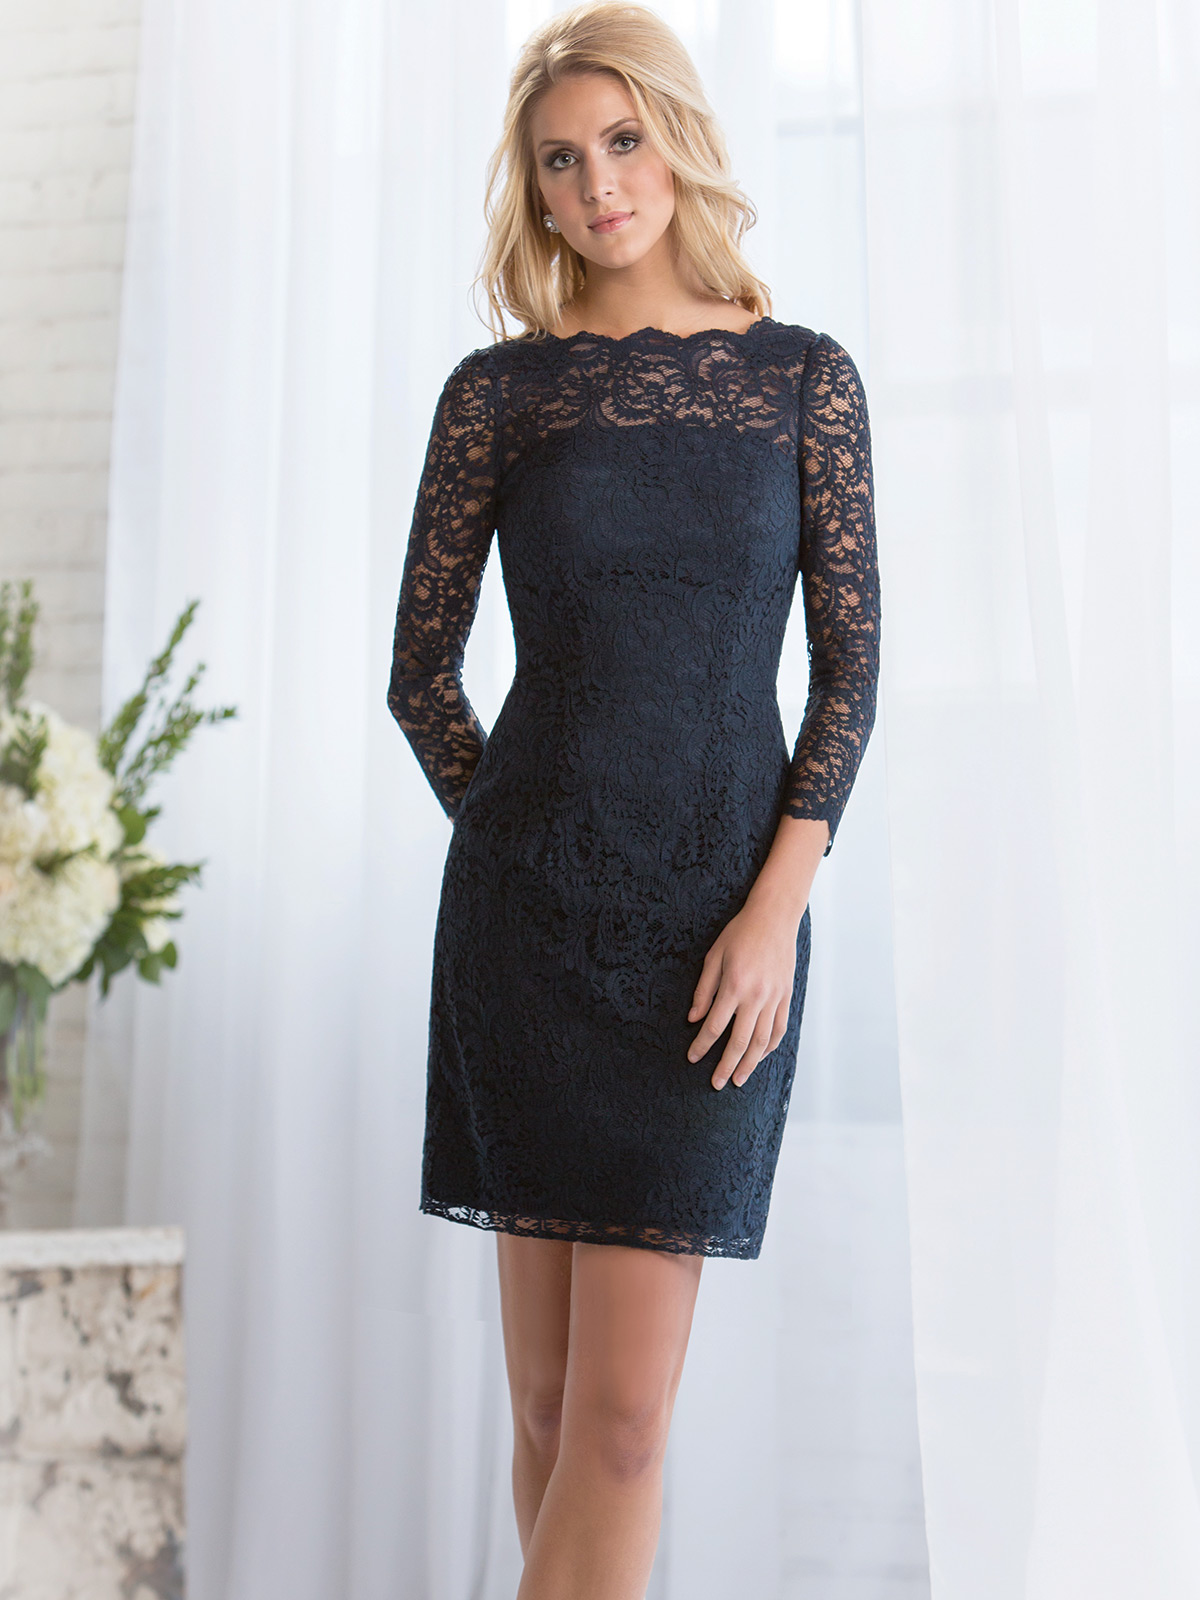 Showy Long Sleeves Lace Belsoie Dress By Jasmine Belsoie Bridesmaid Dress Long Sleeve Bridesmaid Dresses Wine Long Sleeve Bridesmaid Dresses Blue wedding dress Long Sleeve Bridesmaid Dresses